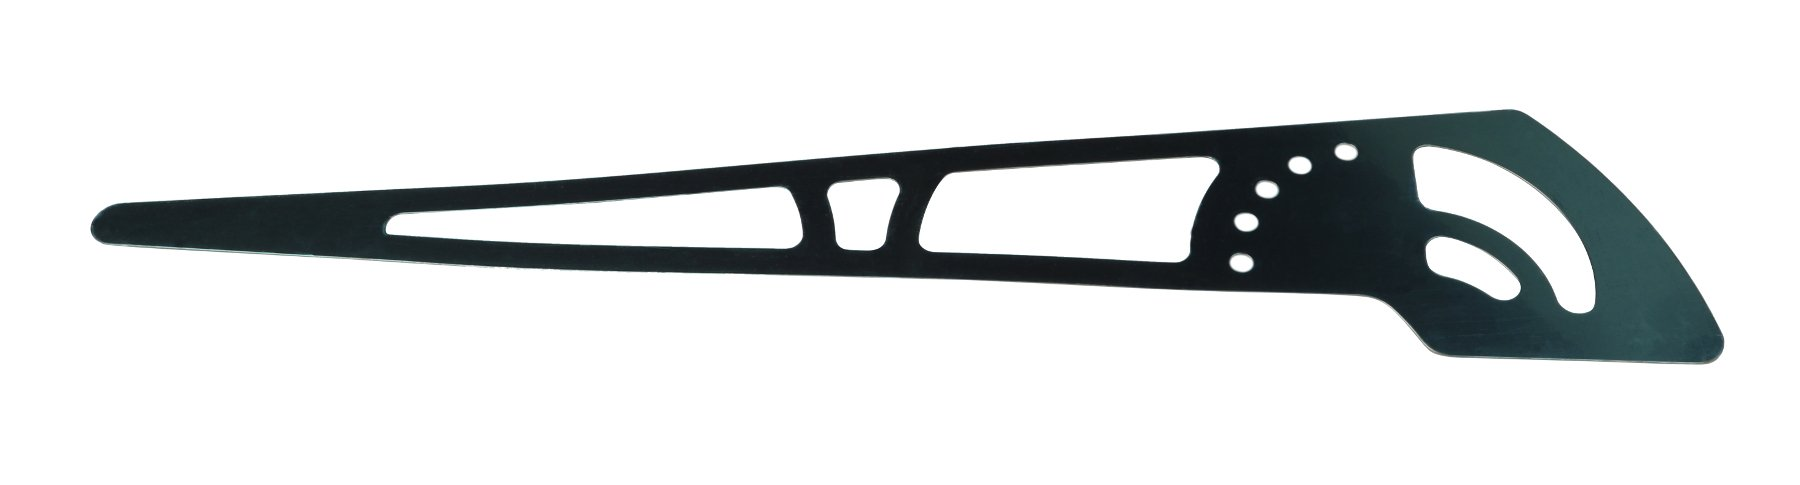 GB8 Right Metal Side Trim